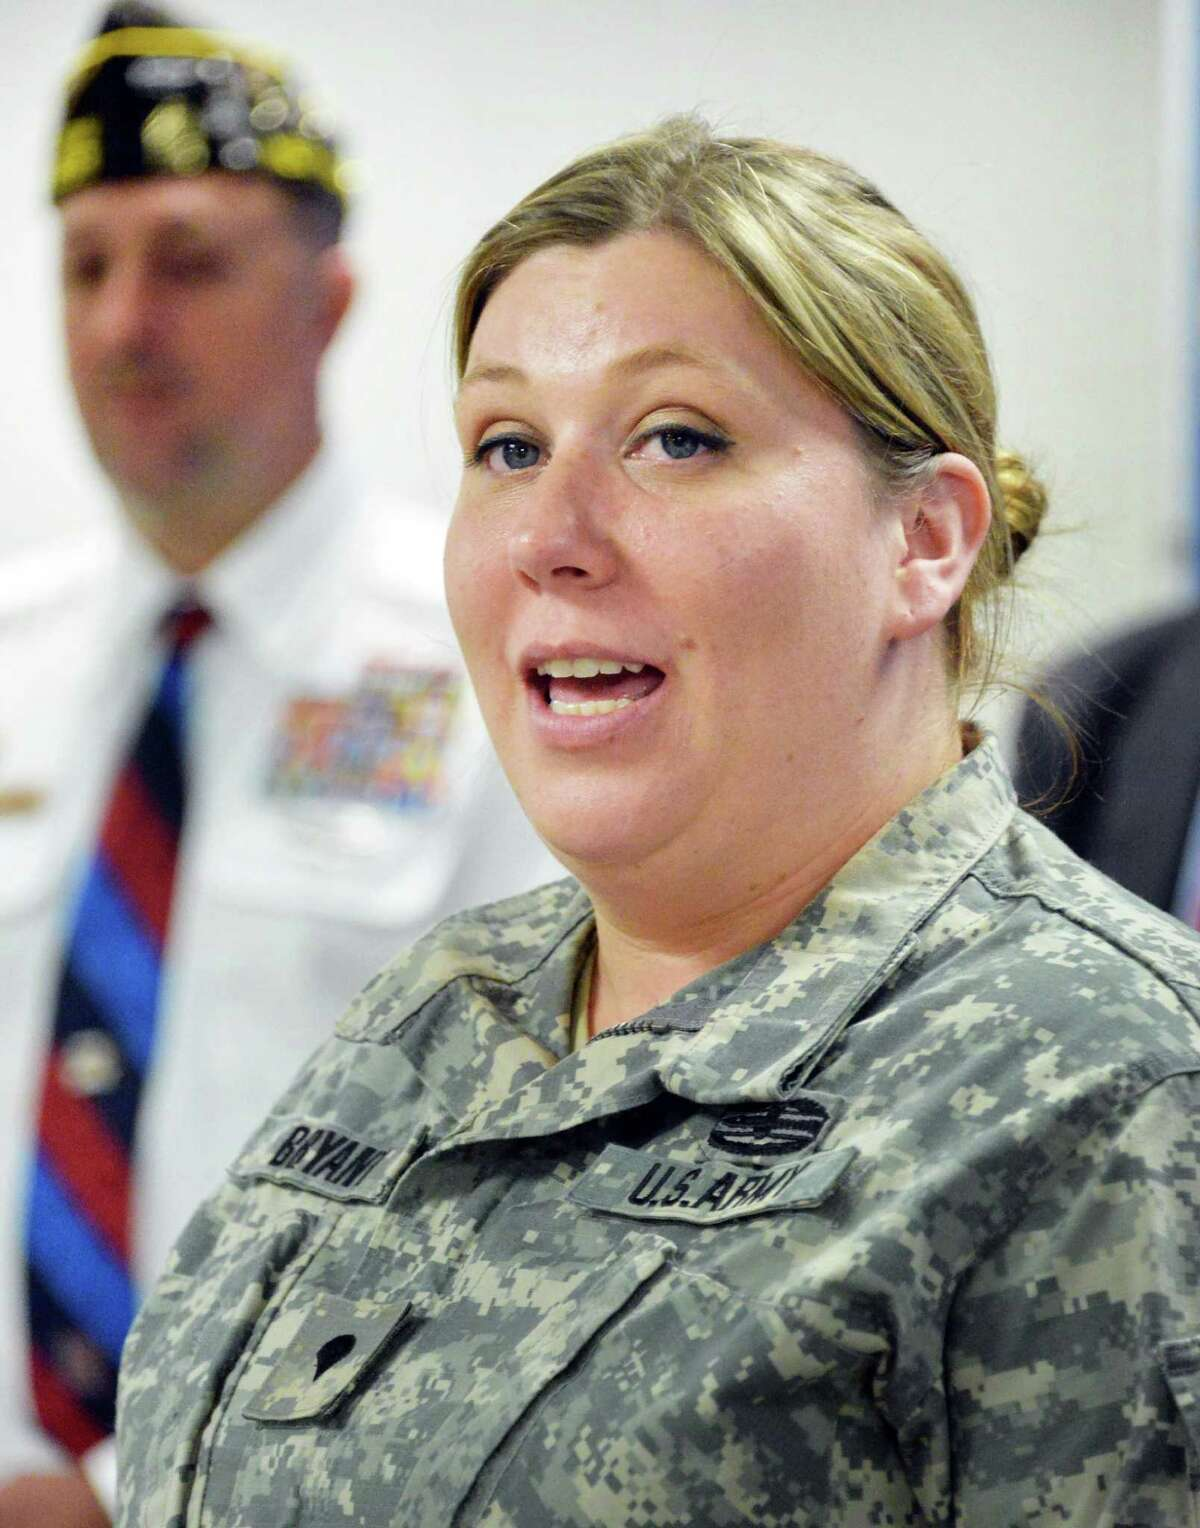 US Army MP Jennifer Nunnery of Batavia speaks during a news conference to urge legislators to pass a bill that helps veterans with mental health ailments in the criminal justice system Tuesday June 10, 2014, in Albany, NY. (John Carl D'Annibale / Times Union)